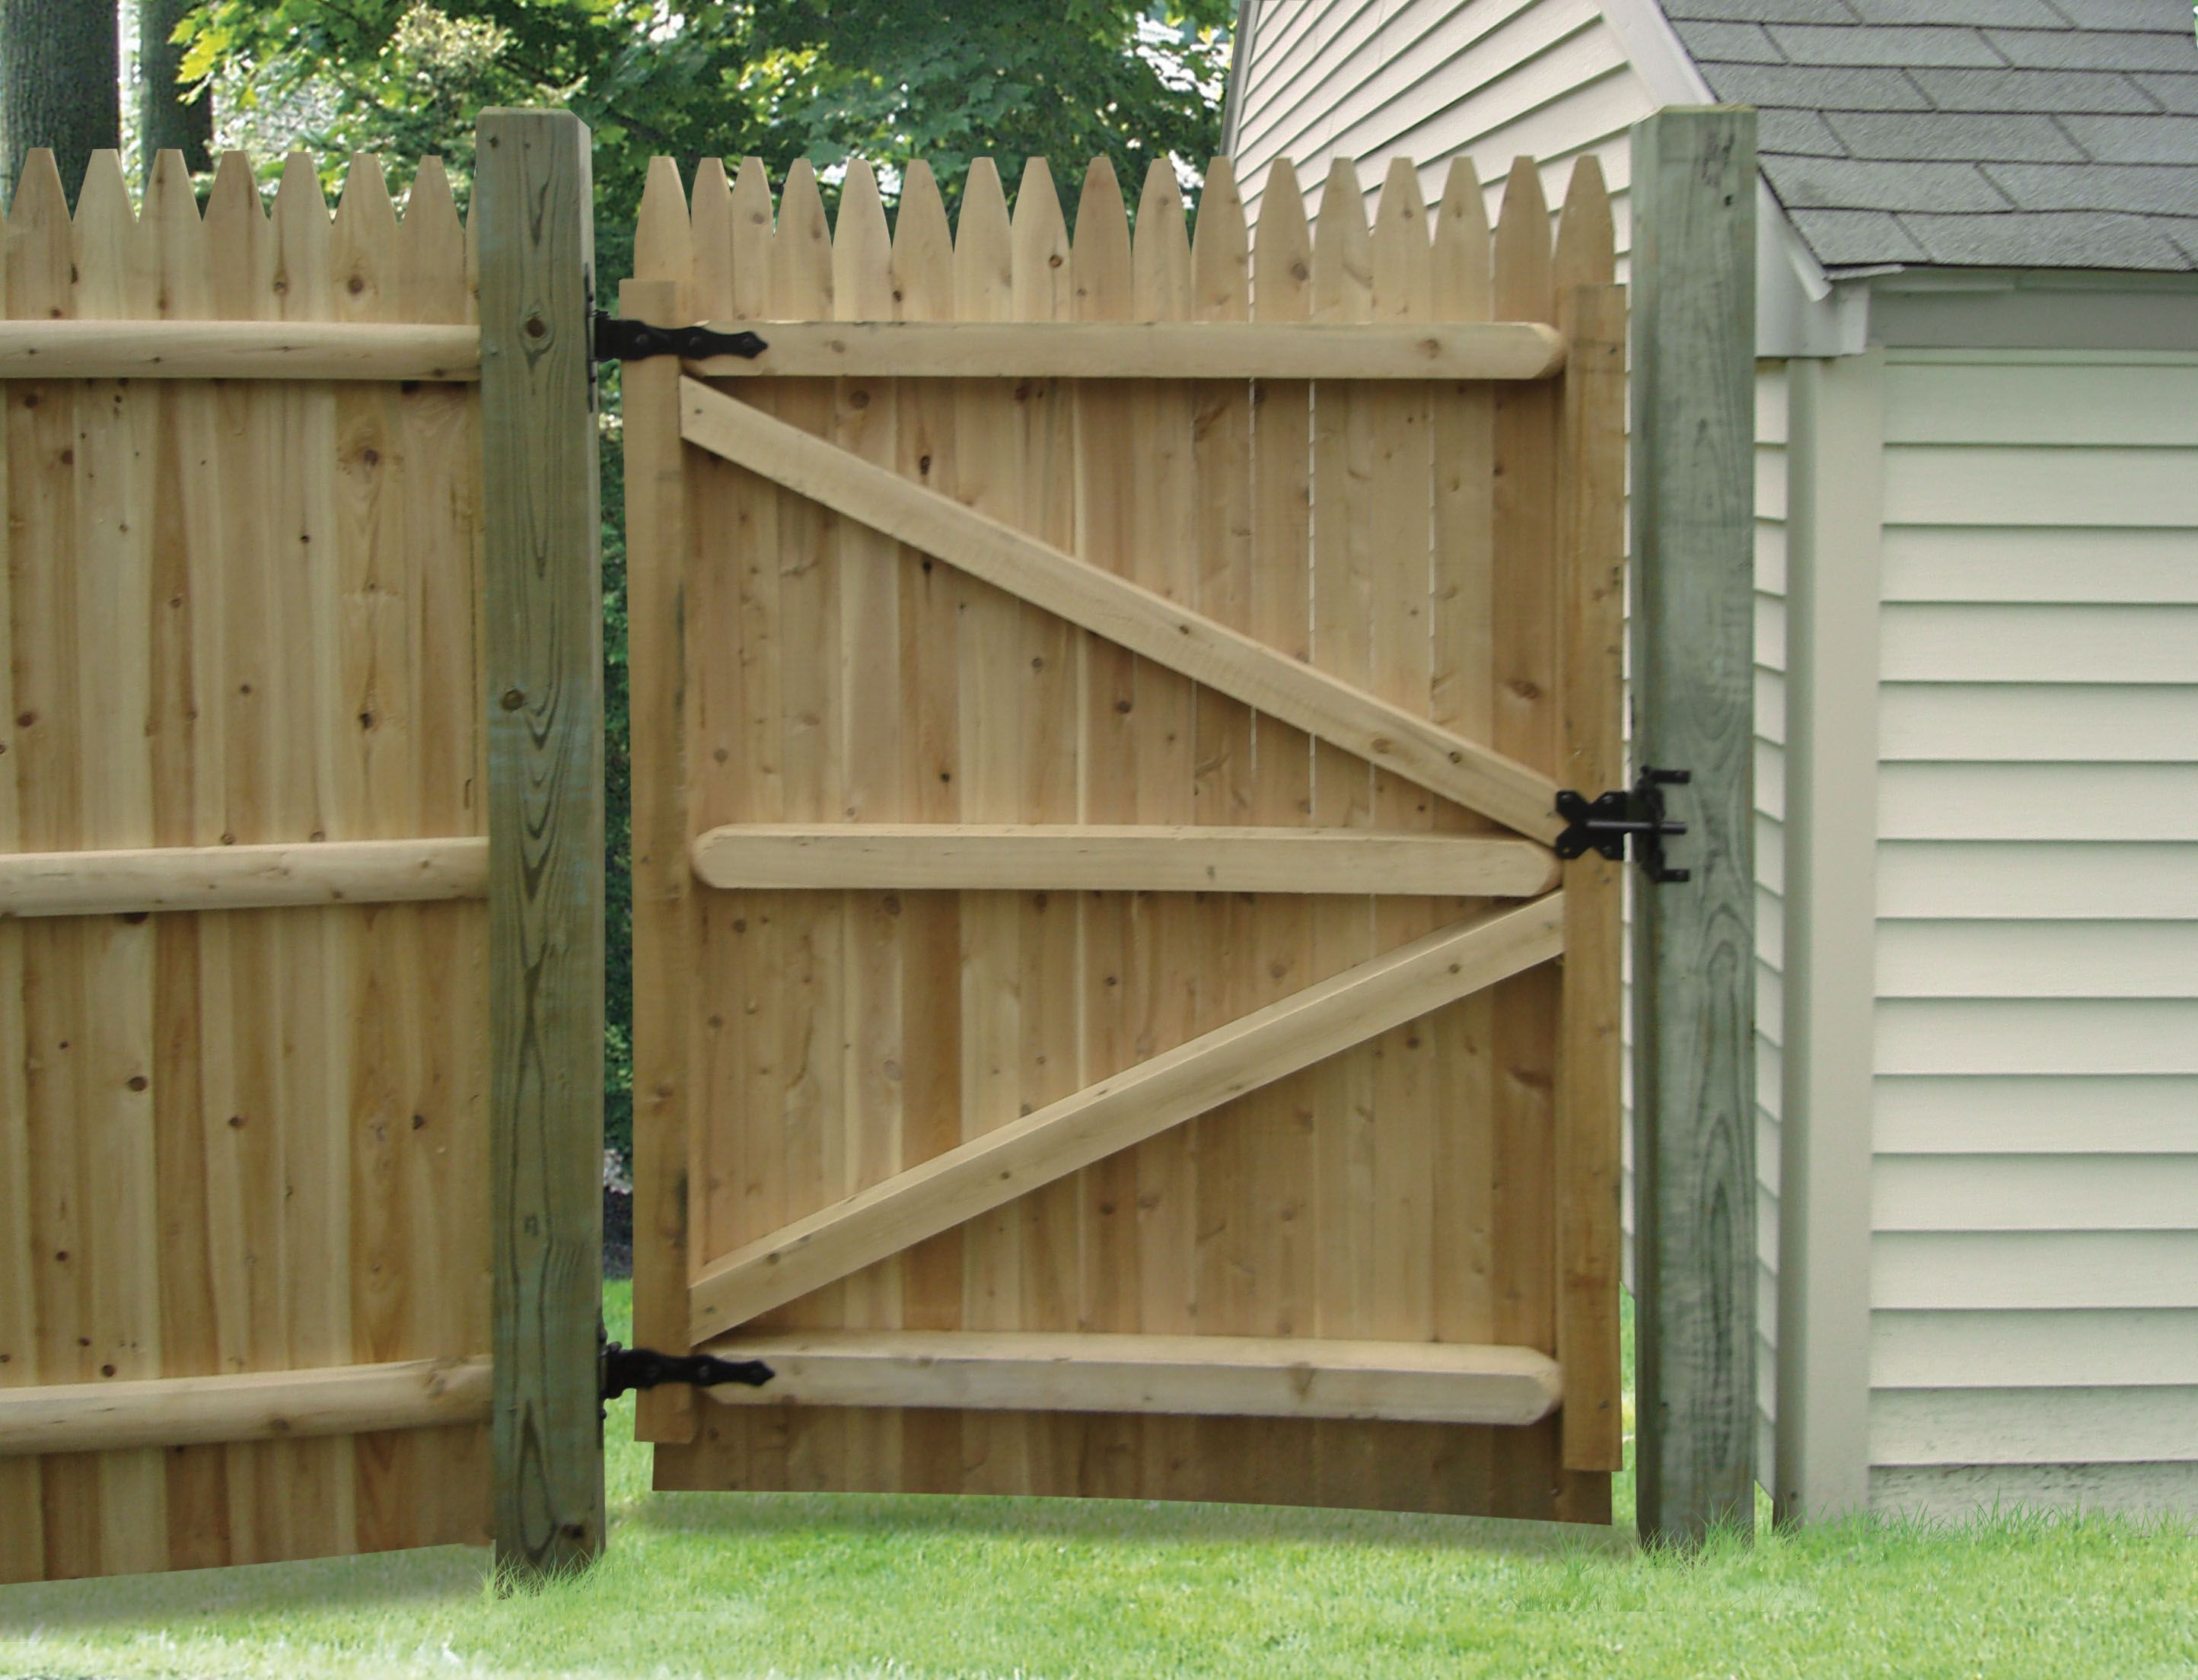 wooden fence gates designs wood fence doors interior. Black Bedroom Furniture Sets. Home Design Ideas